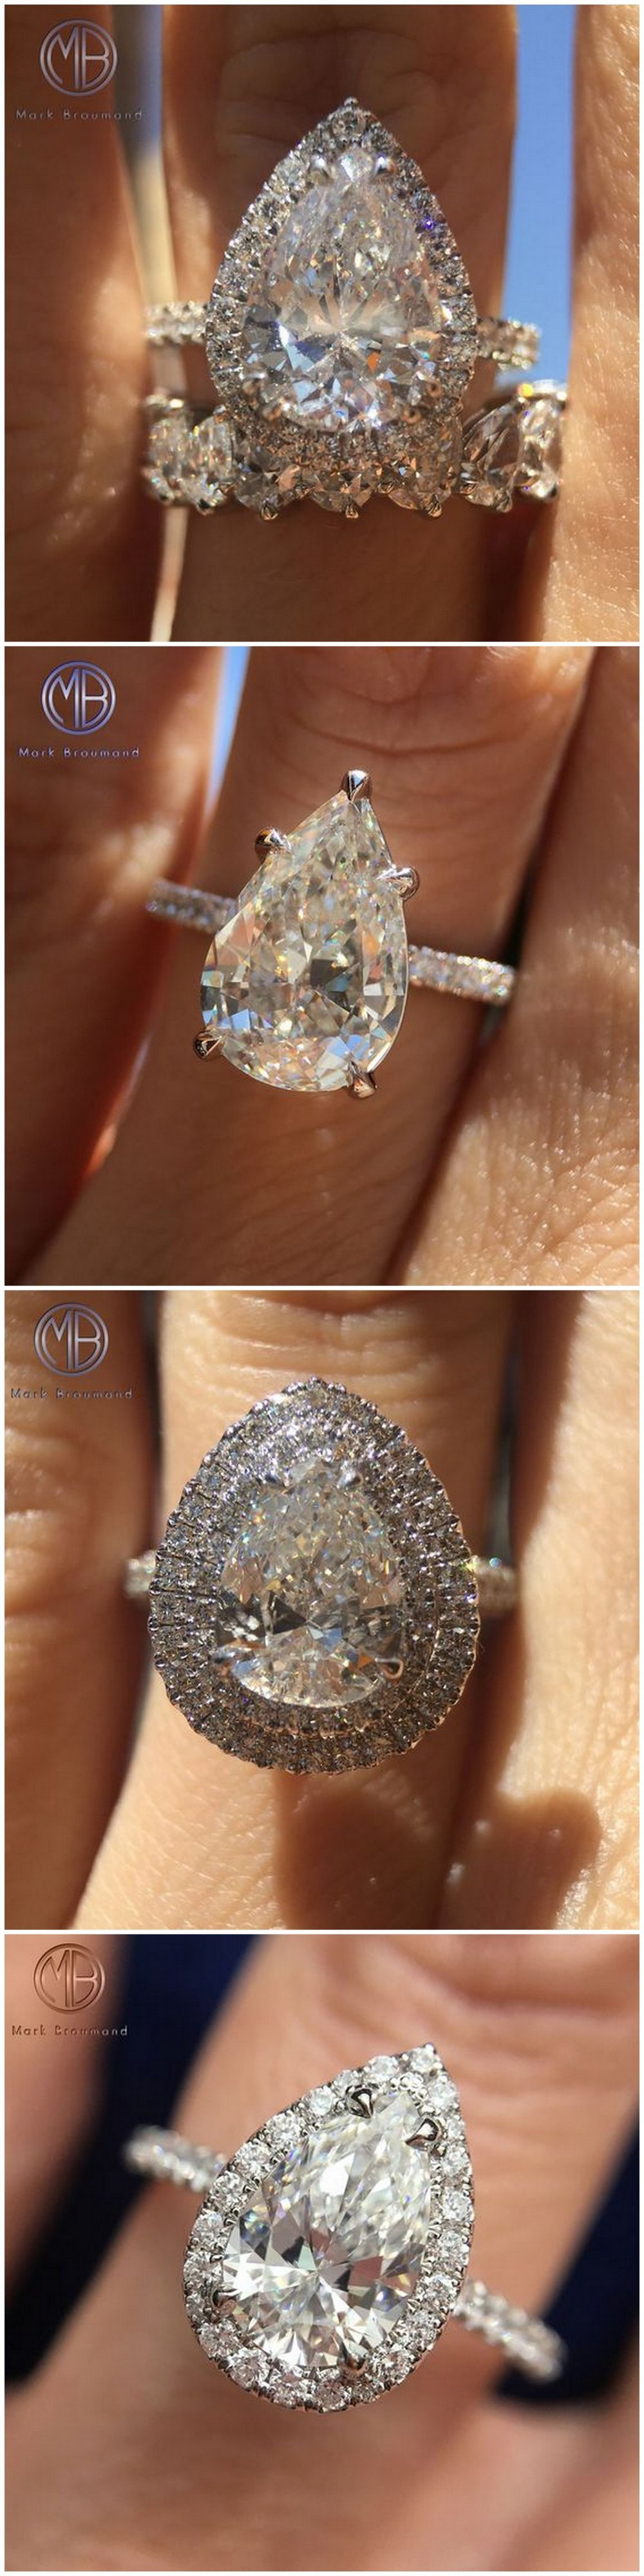 Gorgeous Rings